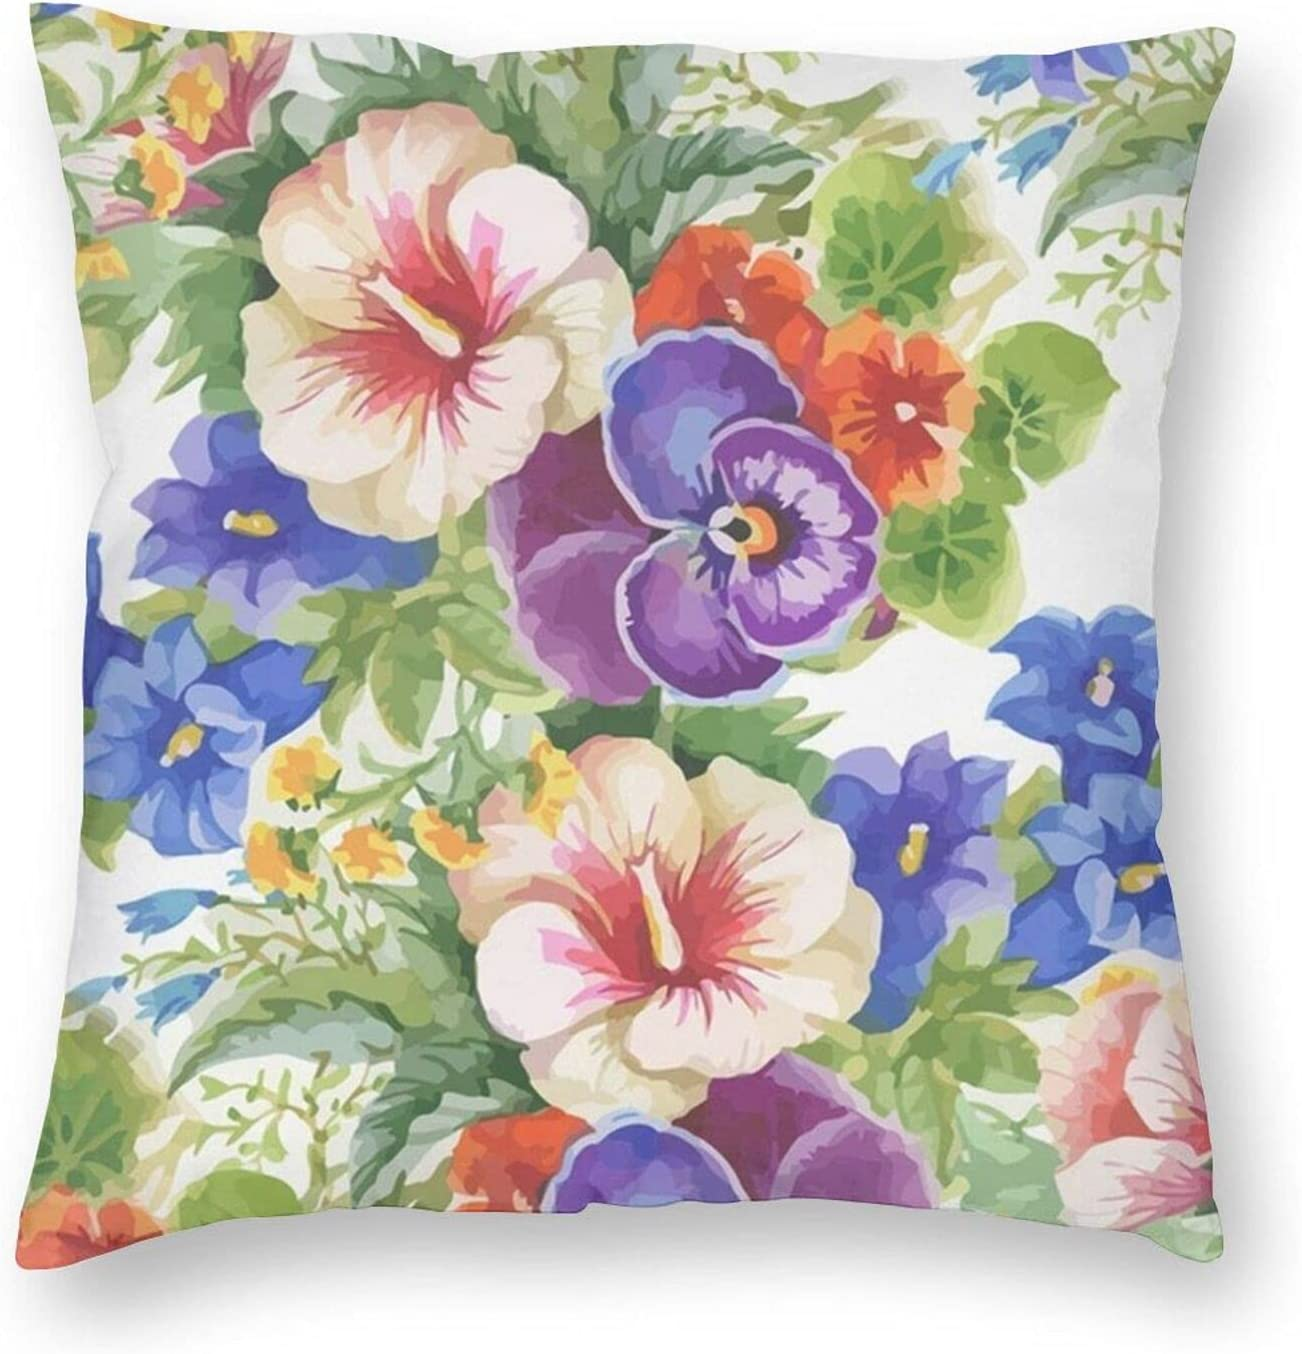 Ultra-Cheap Deals Beautiful Floral Lightweight Soft Square Pillow for Couc Max 84% OFF Inserts